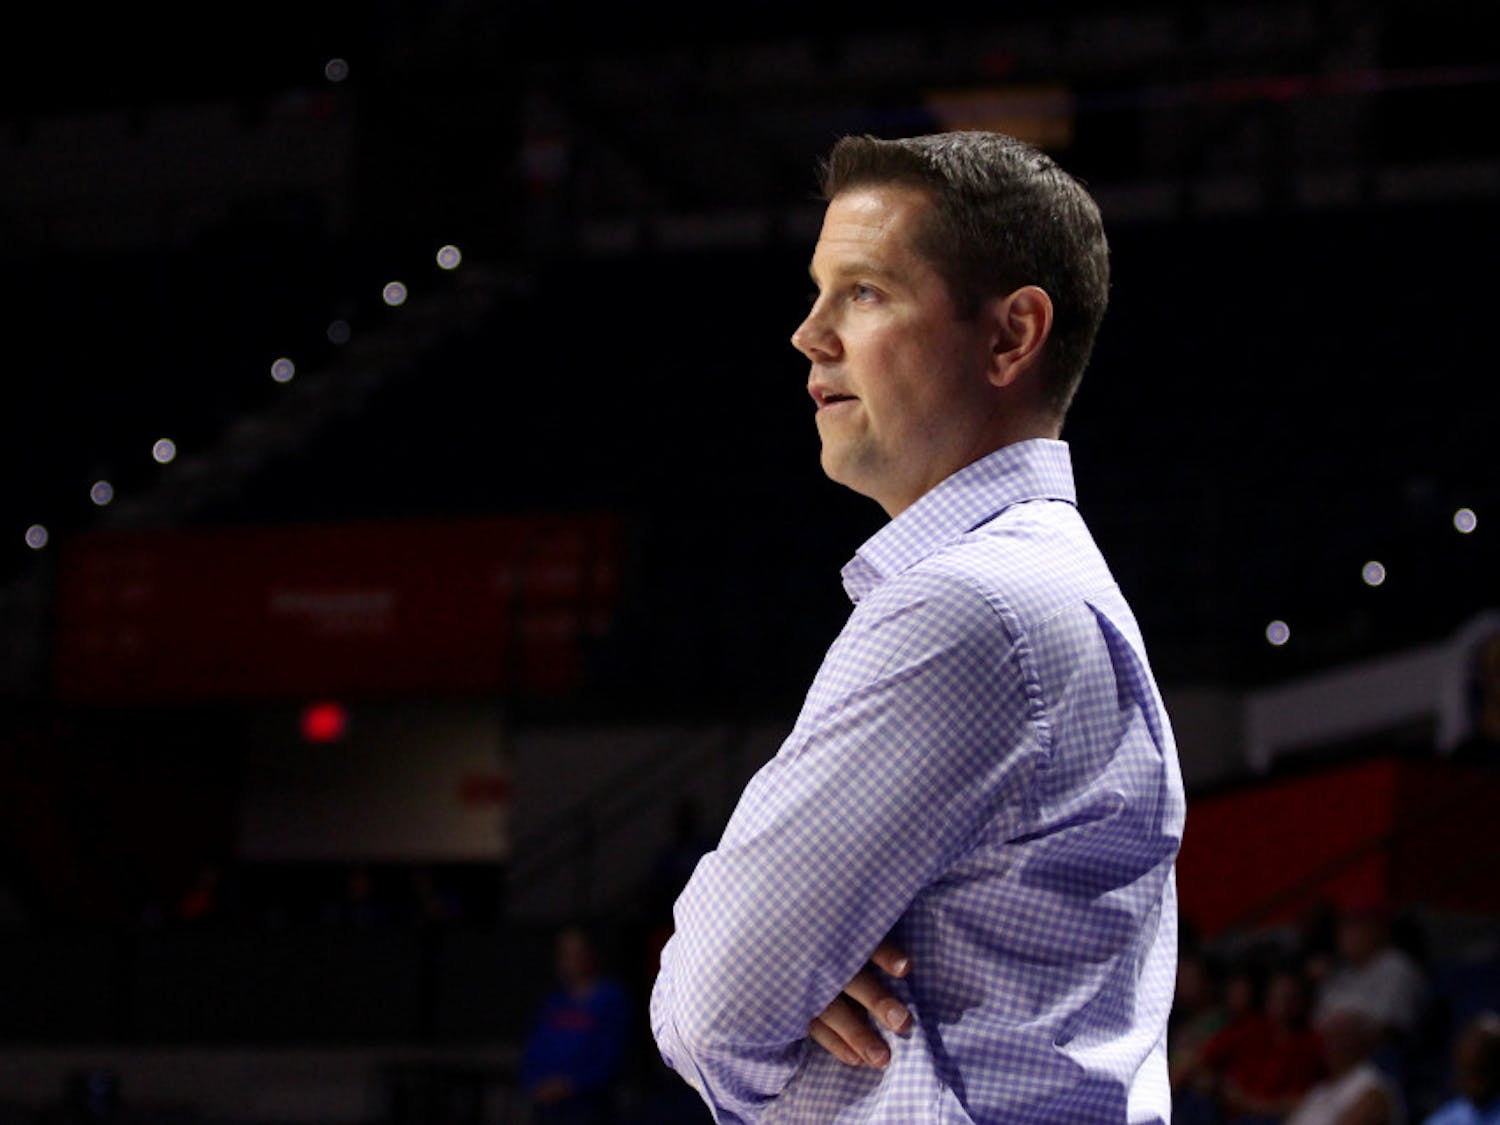 """Florida women's basketball coach Cameron Newbauer wasn't pleased with his team's high volume of turnovers in its 103-77 loss to No. 12 Ohio State on Wednesday. """"Selfish basketball,"""" he said. """"It really bit us in the tail and then the wheels fell off."""""""